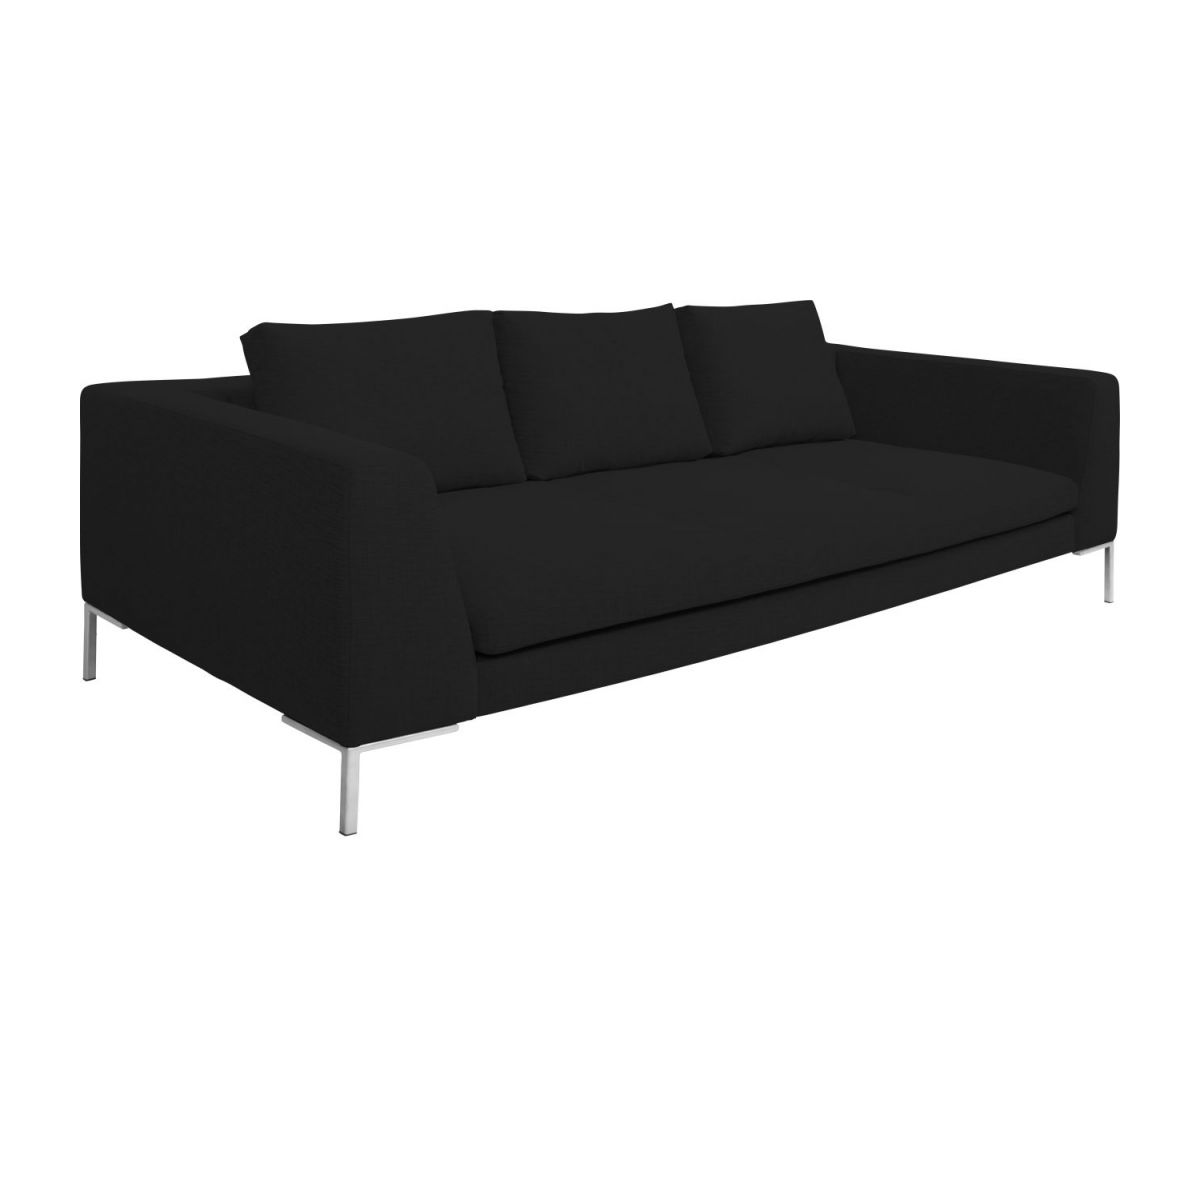 3 seater sofa in Ancio fabric, nero n°1